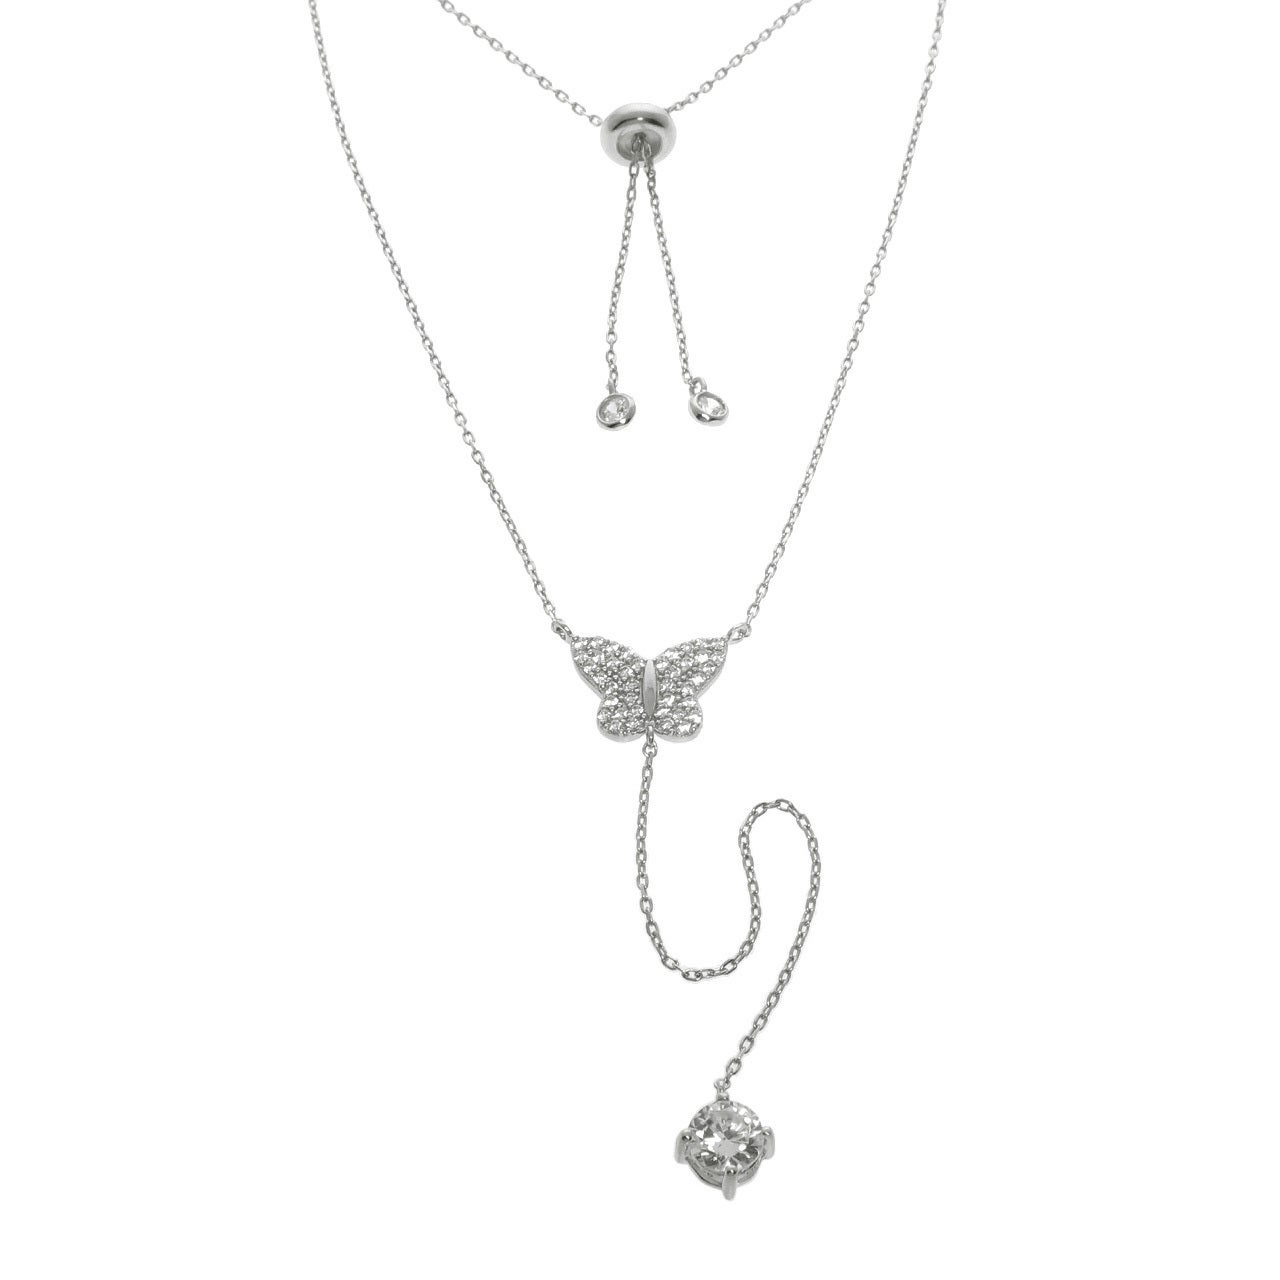 Eternally Haute Solid Sterling Silver Pave Butterfly Y Necklace Pertaining To Most Up To Date Sparkling Butterfly Y  Necklaces (Gallery 12 of 25)